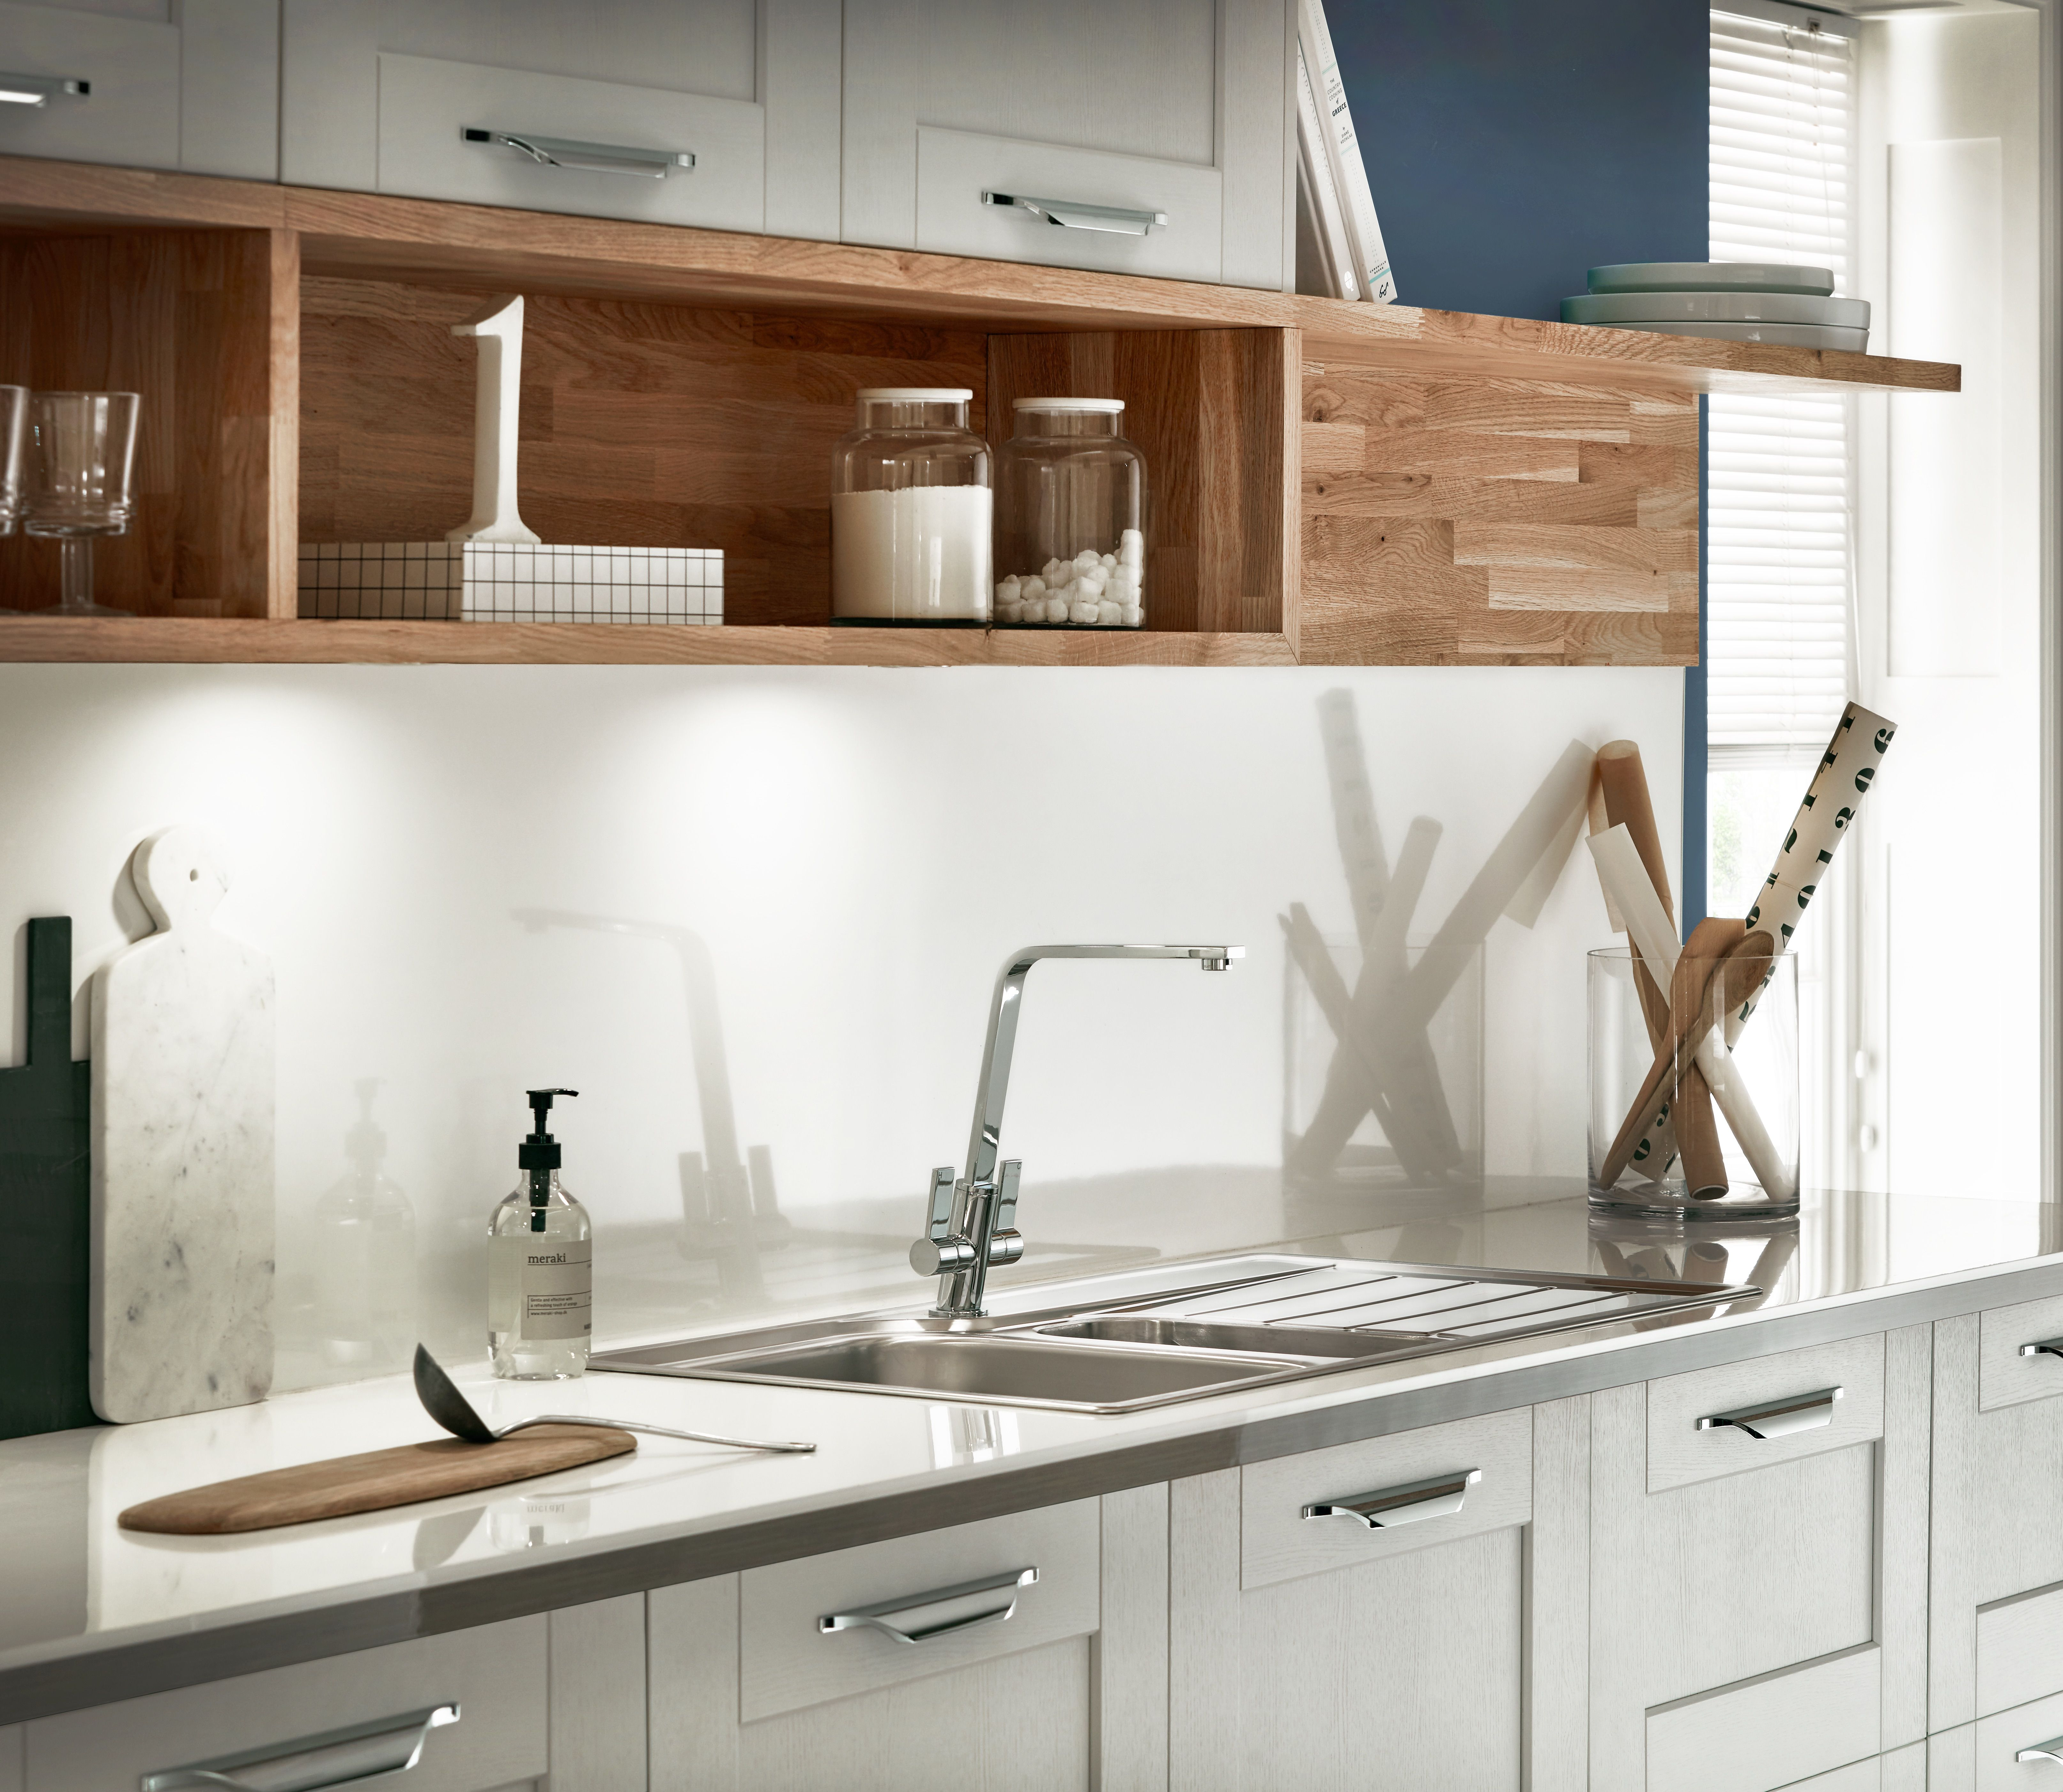 Your home improvements refference maple shaker style kitchen - A Beautiful Shaker Style Kitchen From Howdens This Is The Fairford Dove Grey Kitchen Range